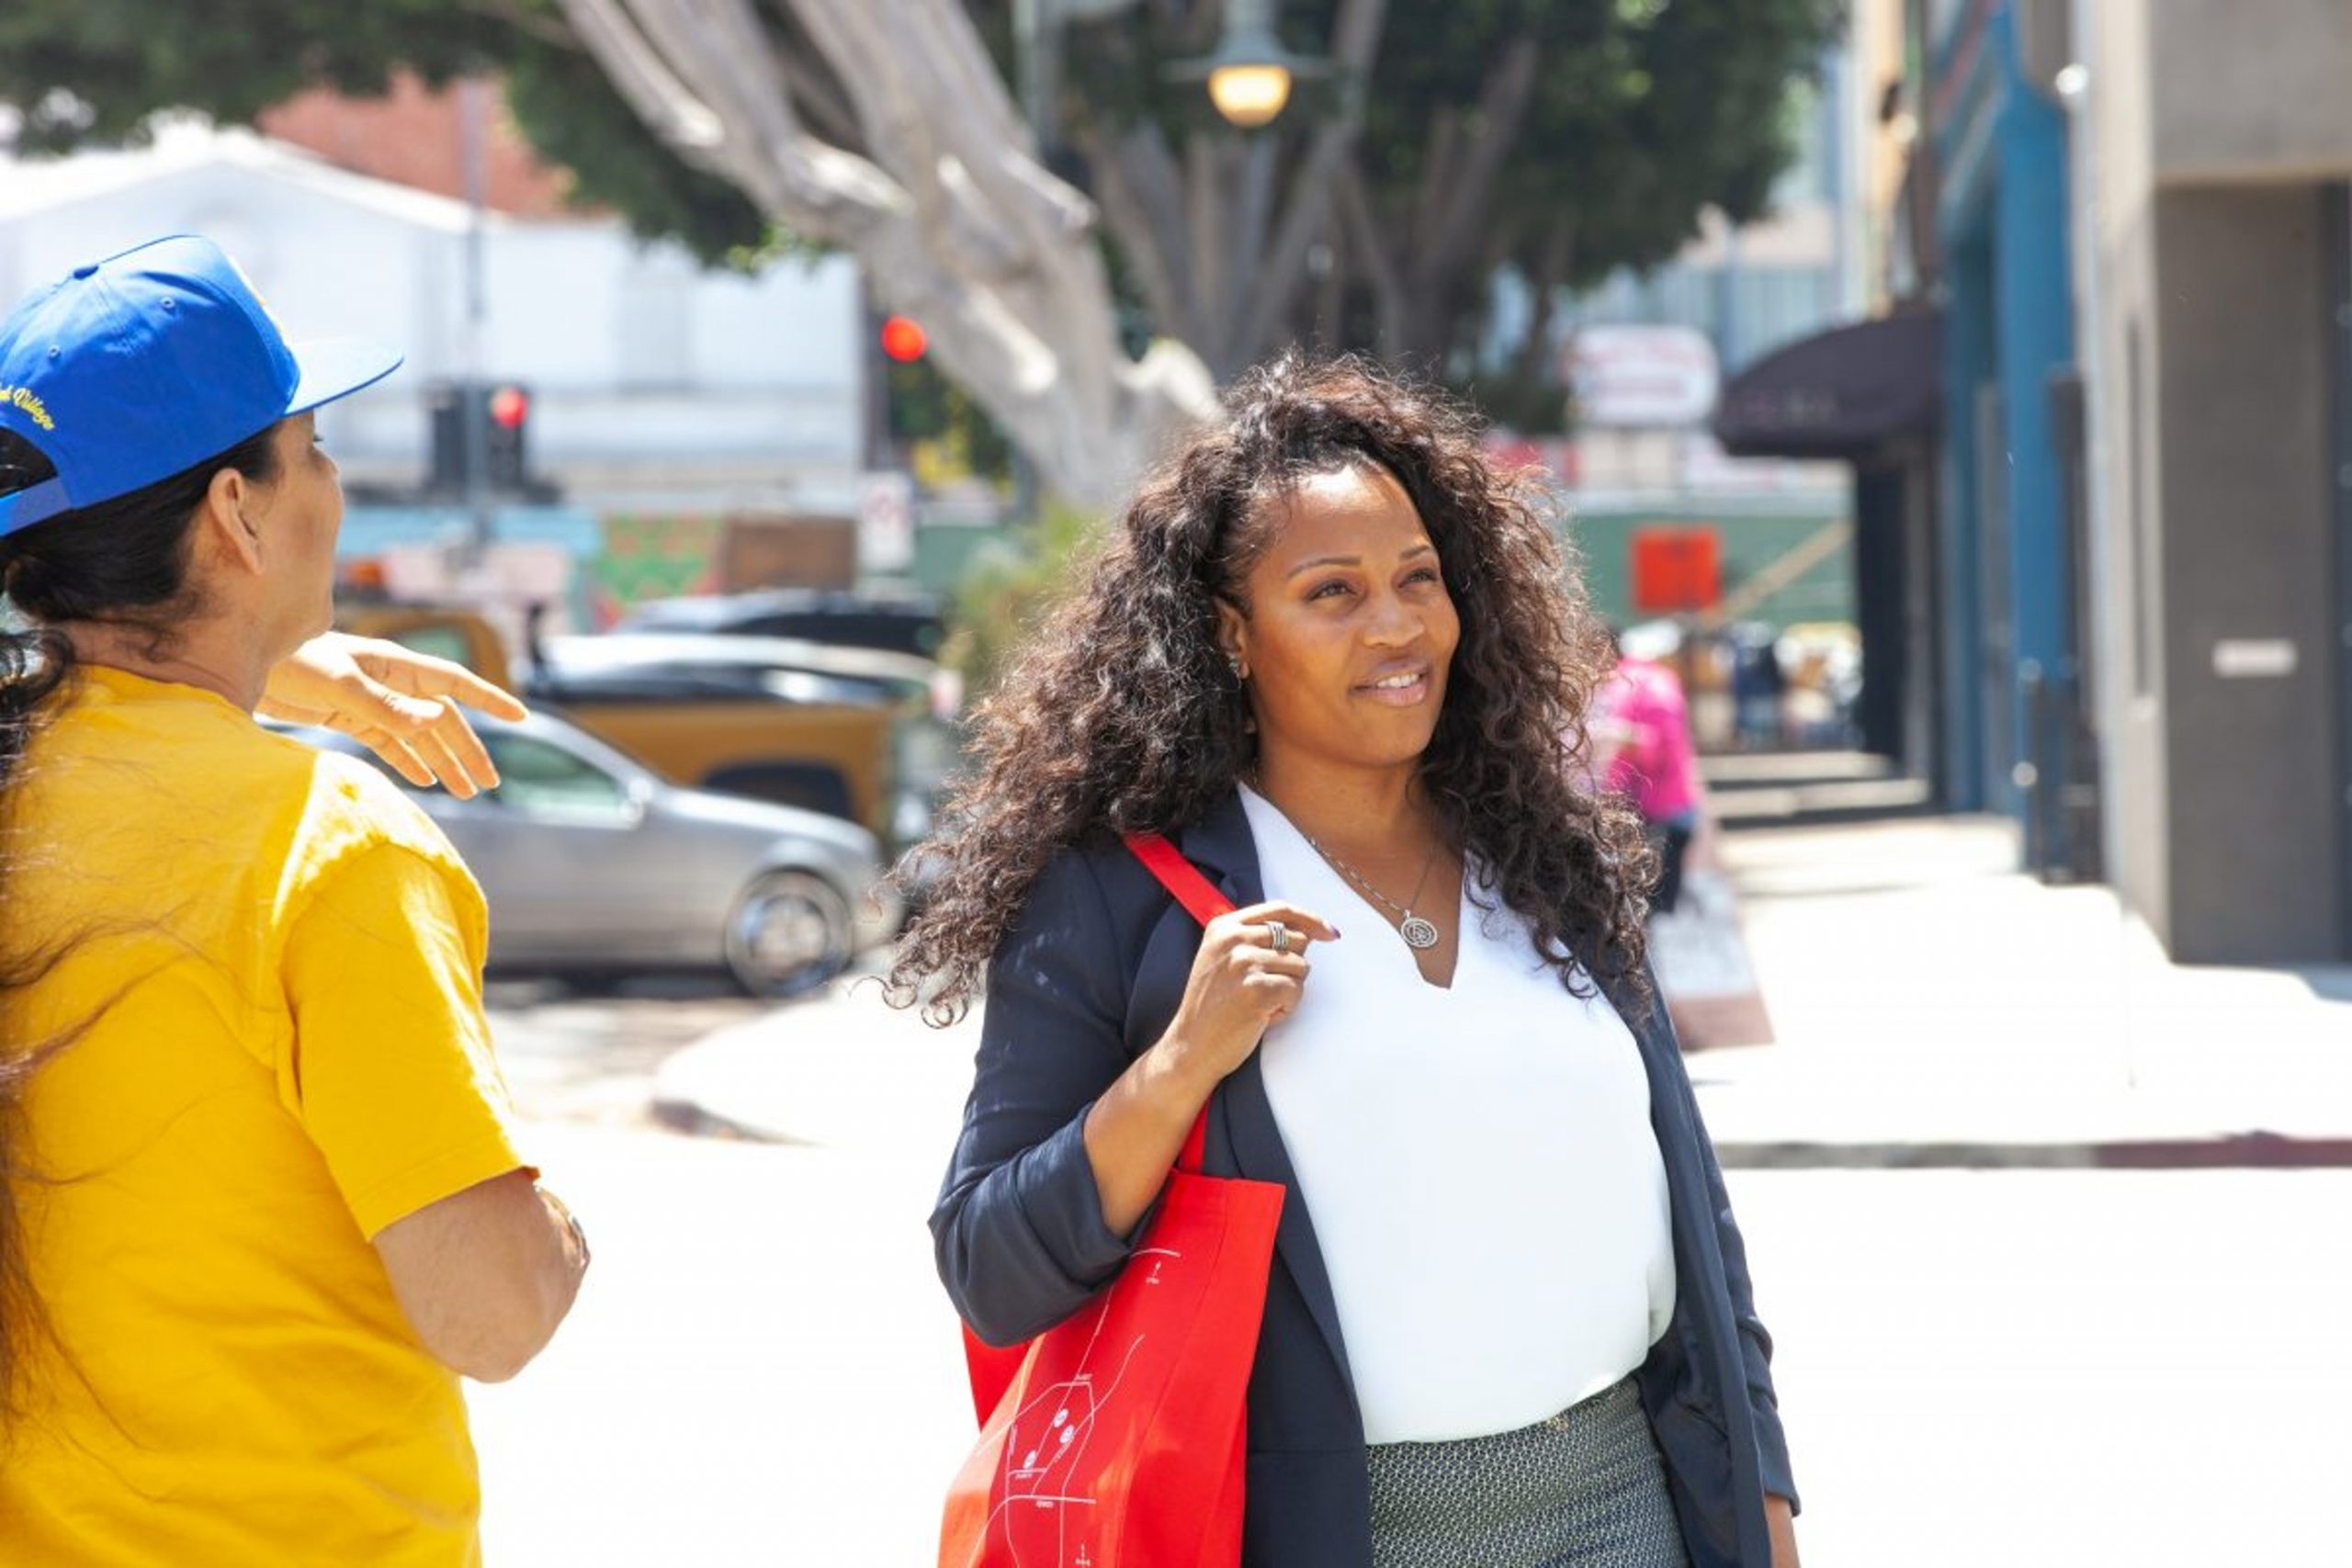 First Place for Youth's Executive Director for Southern California, Suzanne Brown, tours the Art + Practice campus in Leimert Park with Allan DiCastro, Los Angeles. 27 June 2019. Photo by Josiah Green.